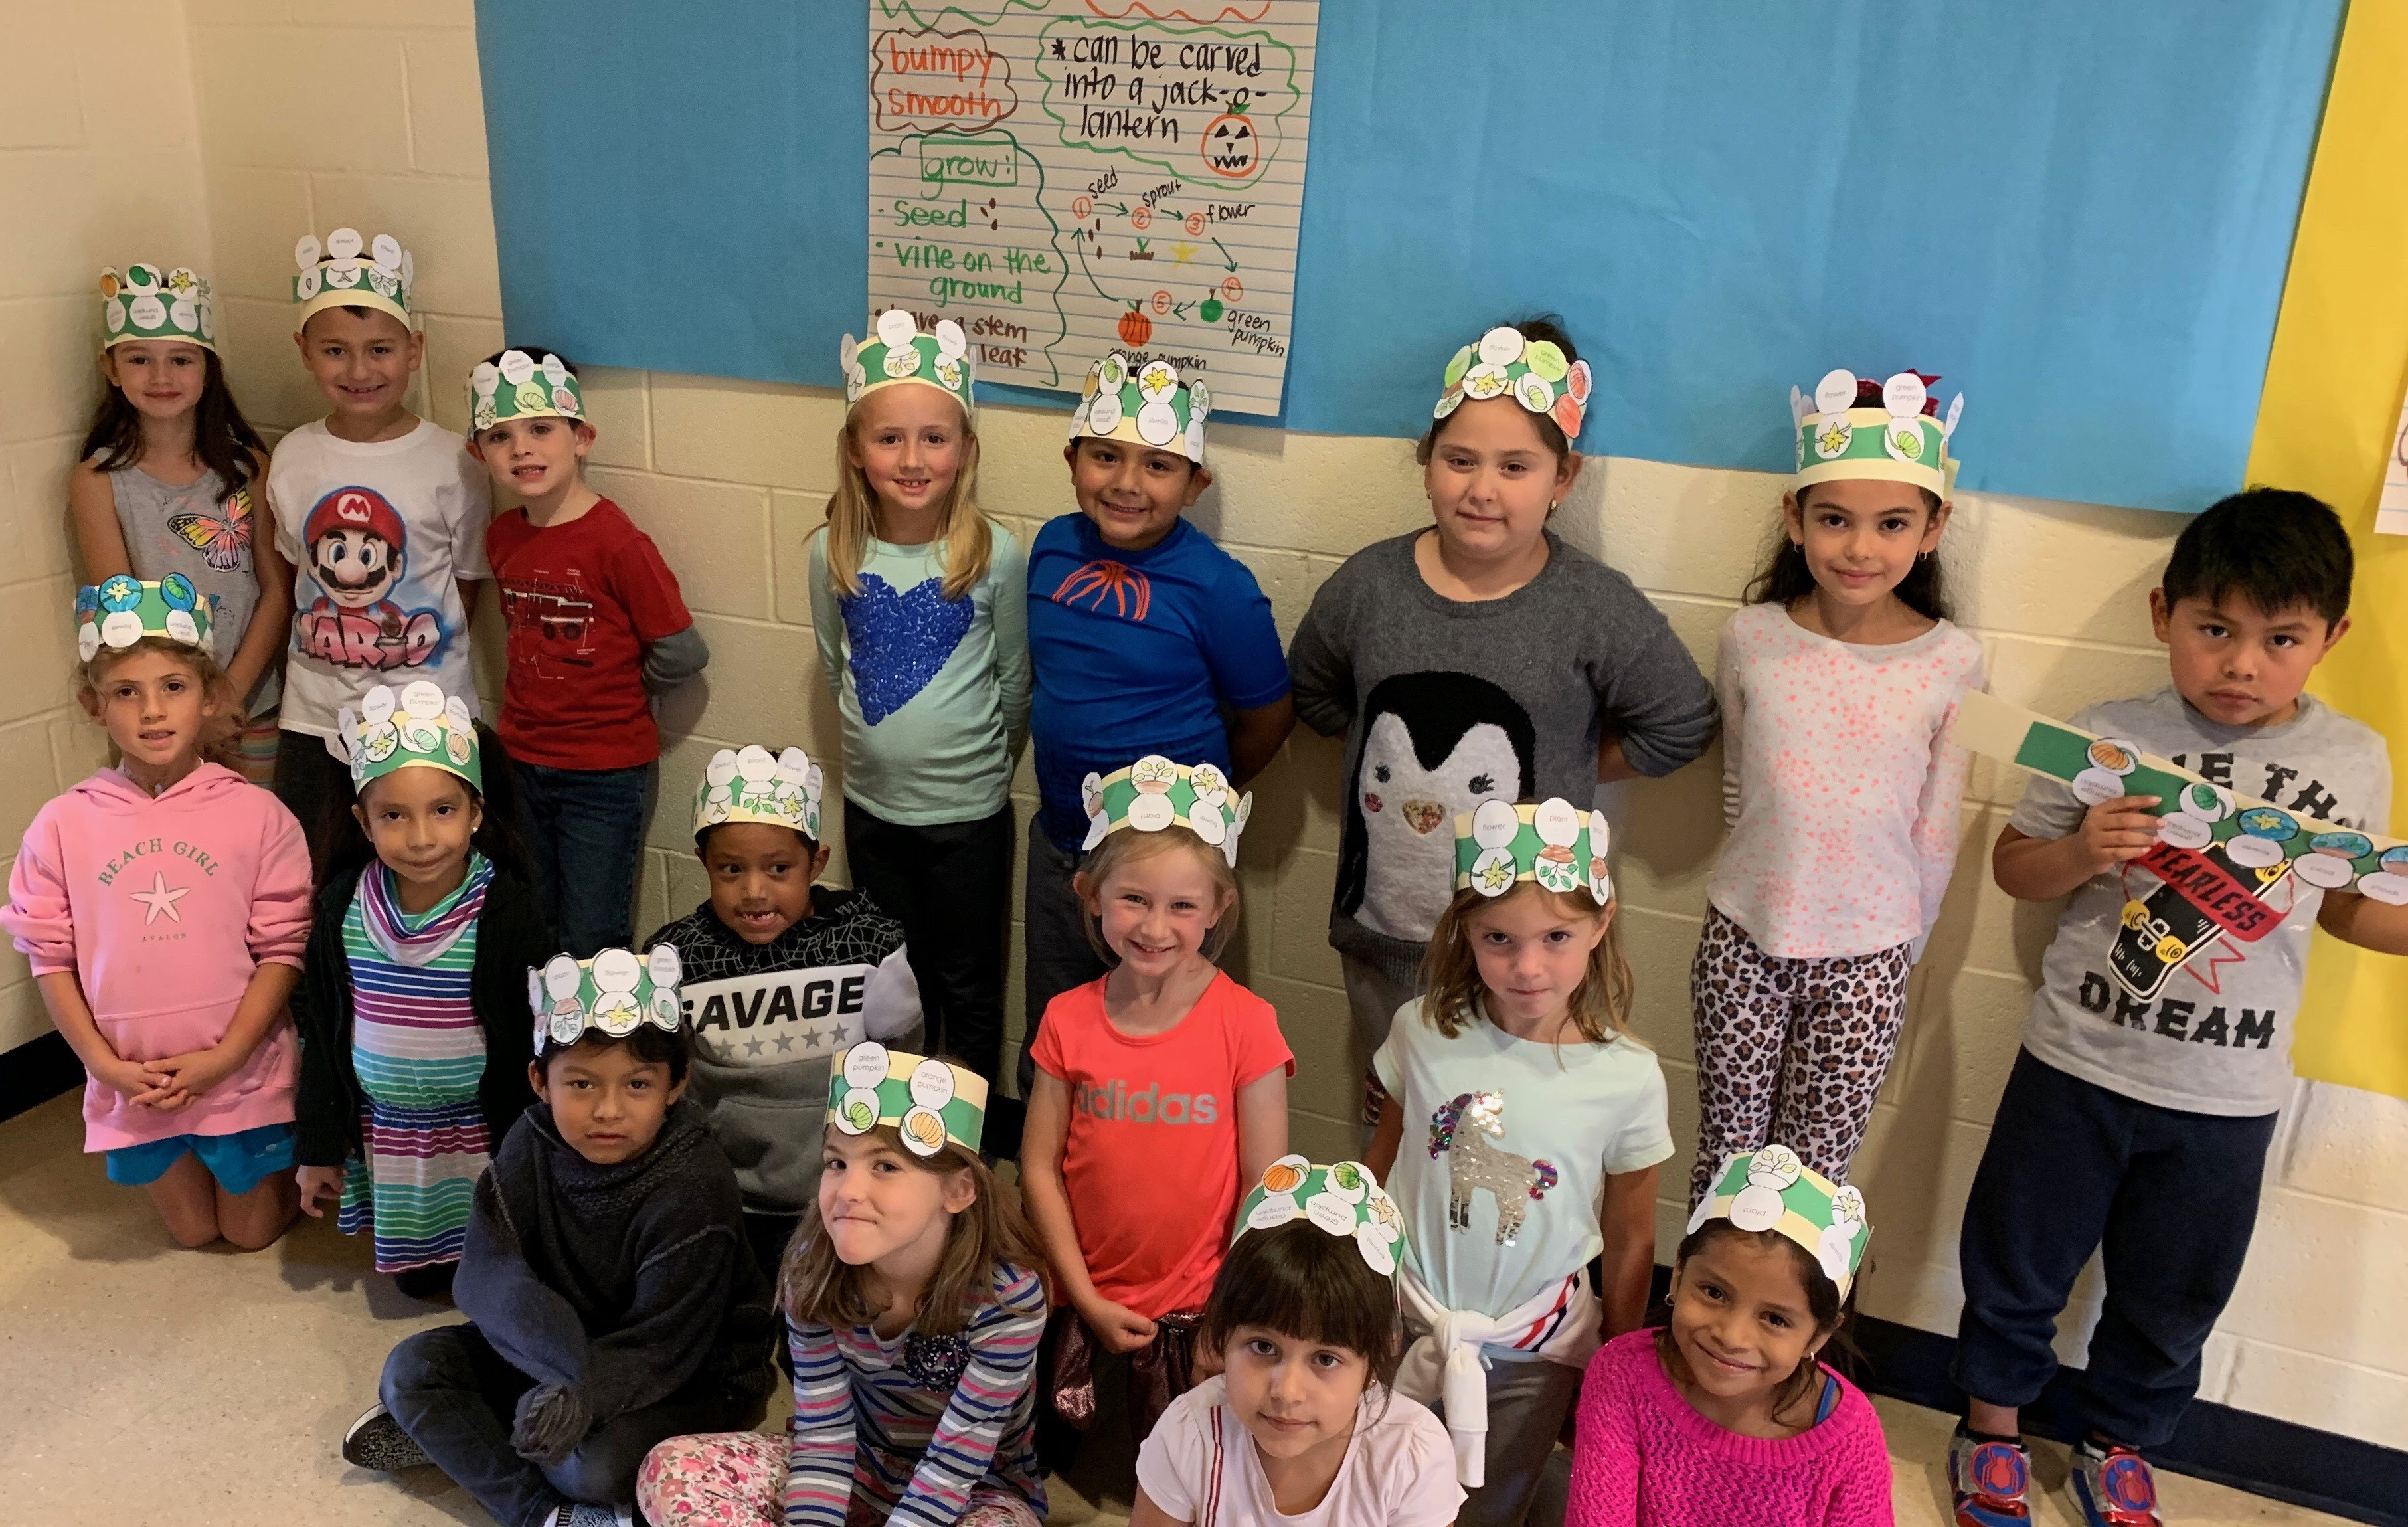 students smiling with crowns